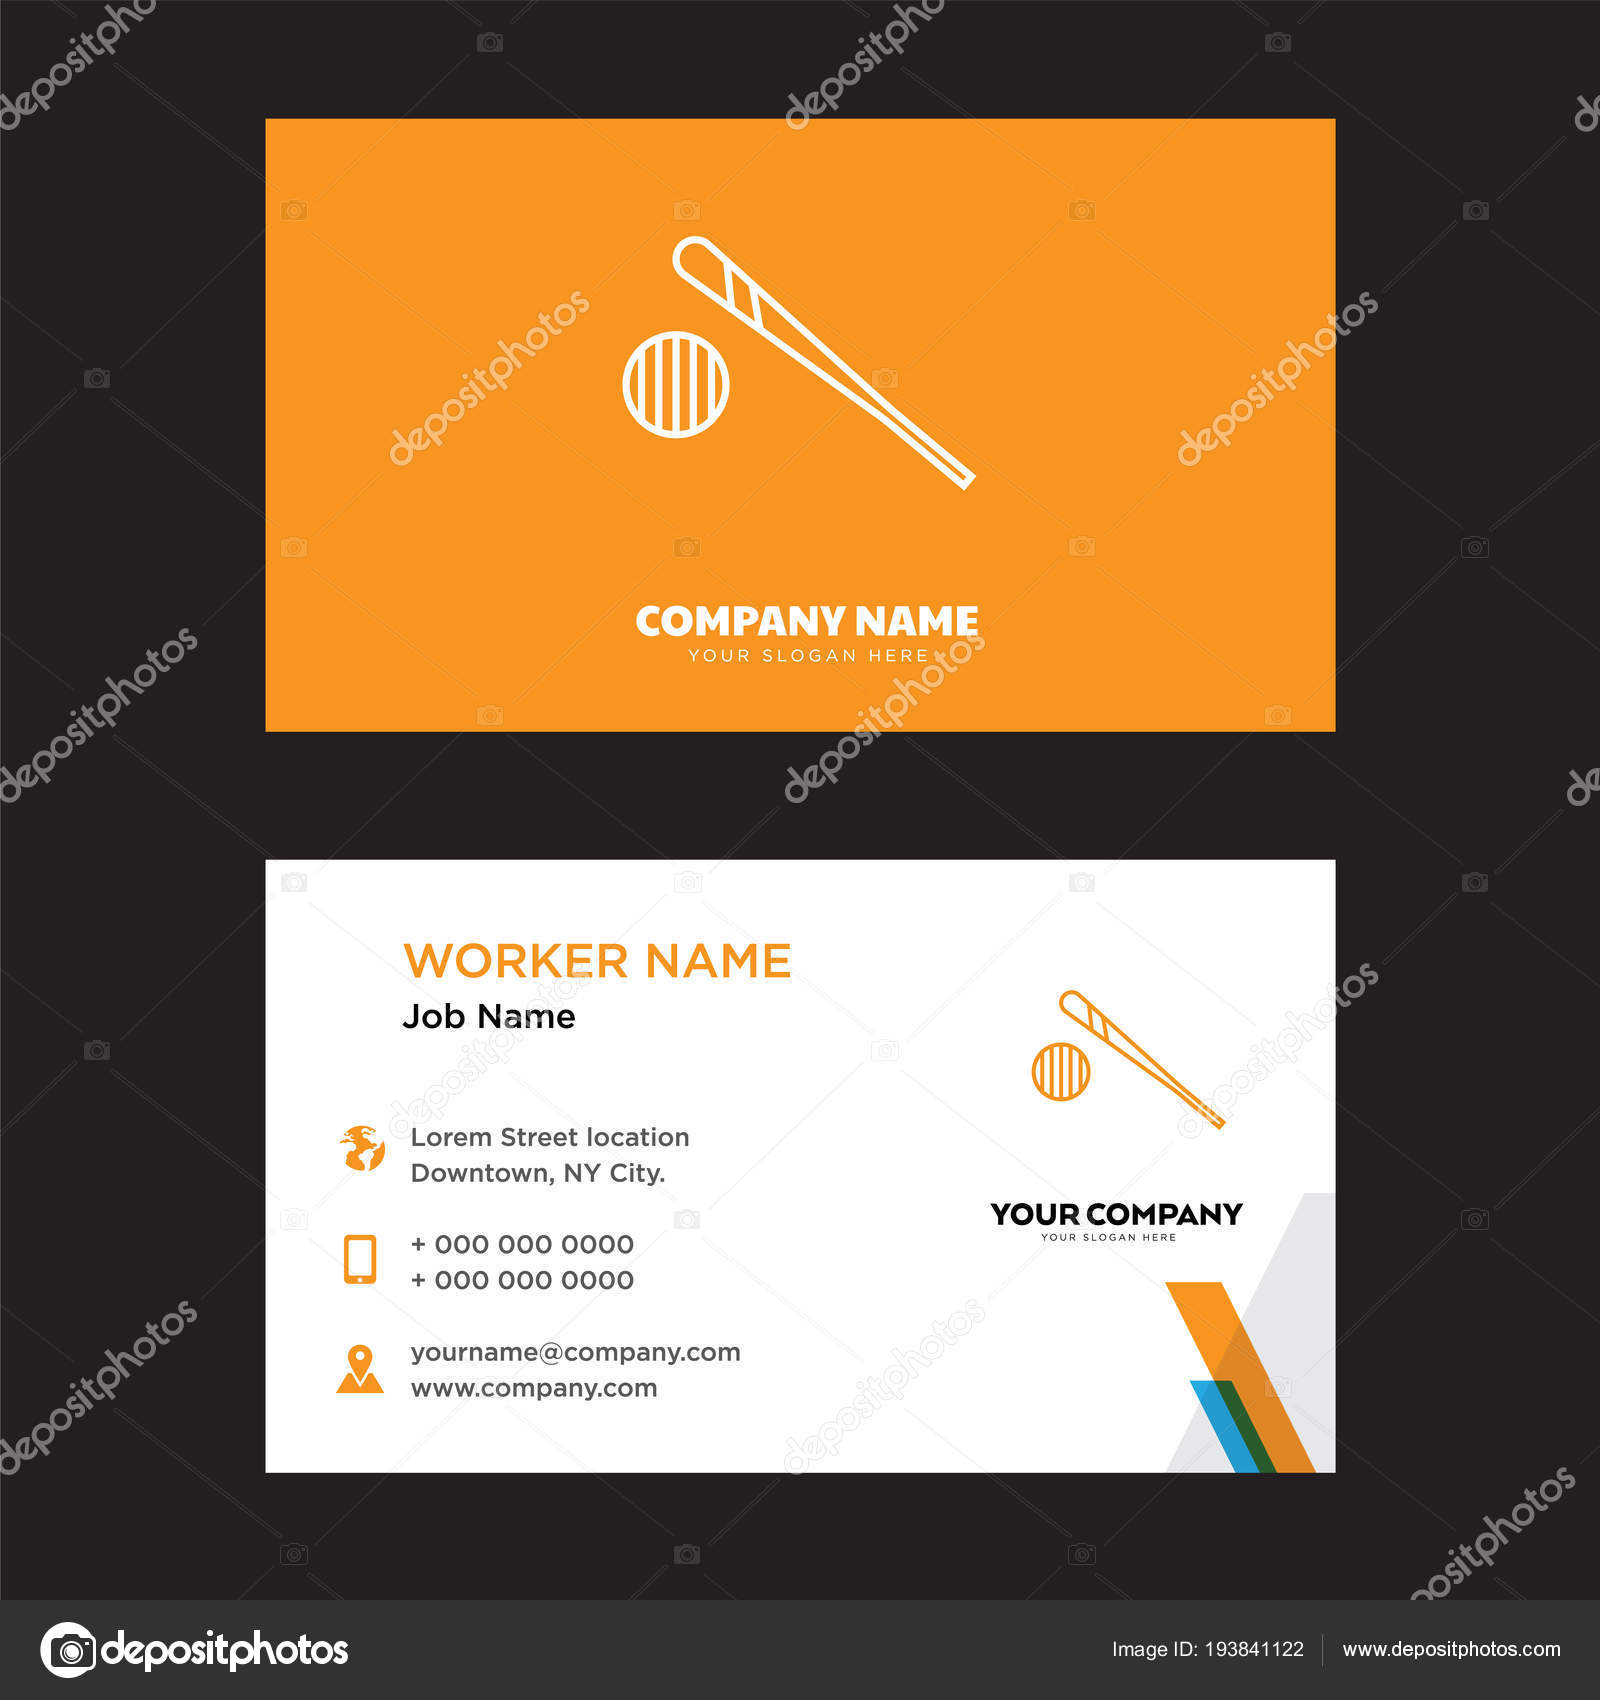 Baseball business card design stock vector sabinarahimova 193841122 baseball business card design template visiting for your company modern creative and clean identity card vector vector by sabinarahimova colourmoves